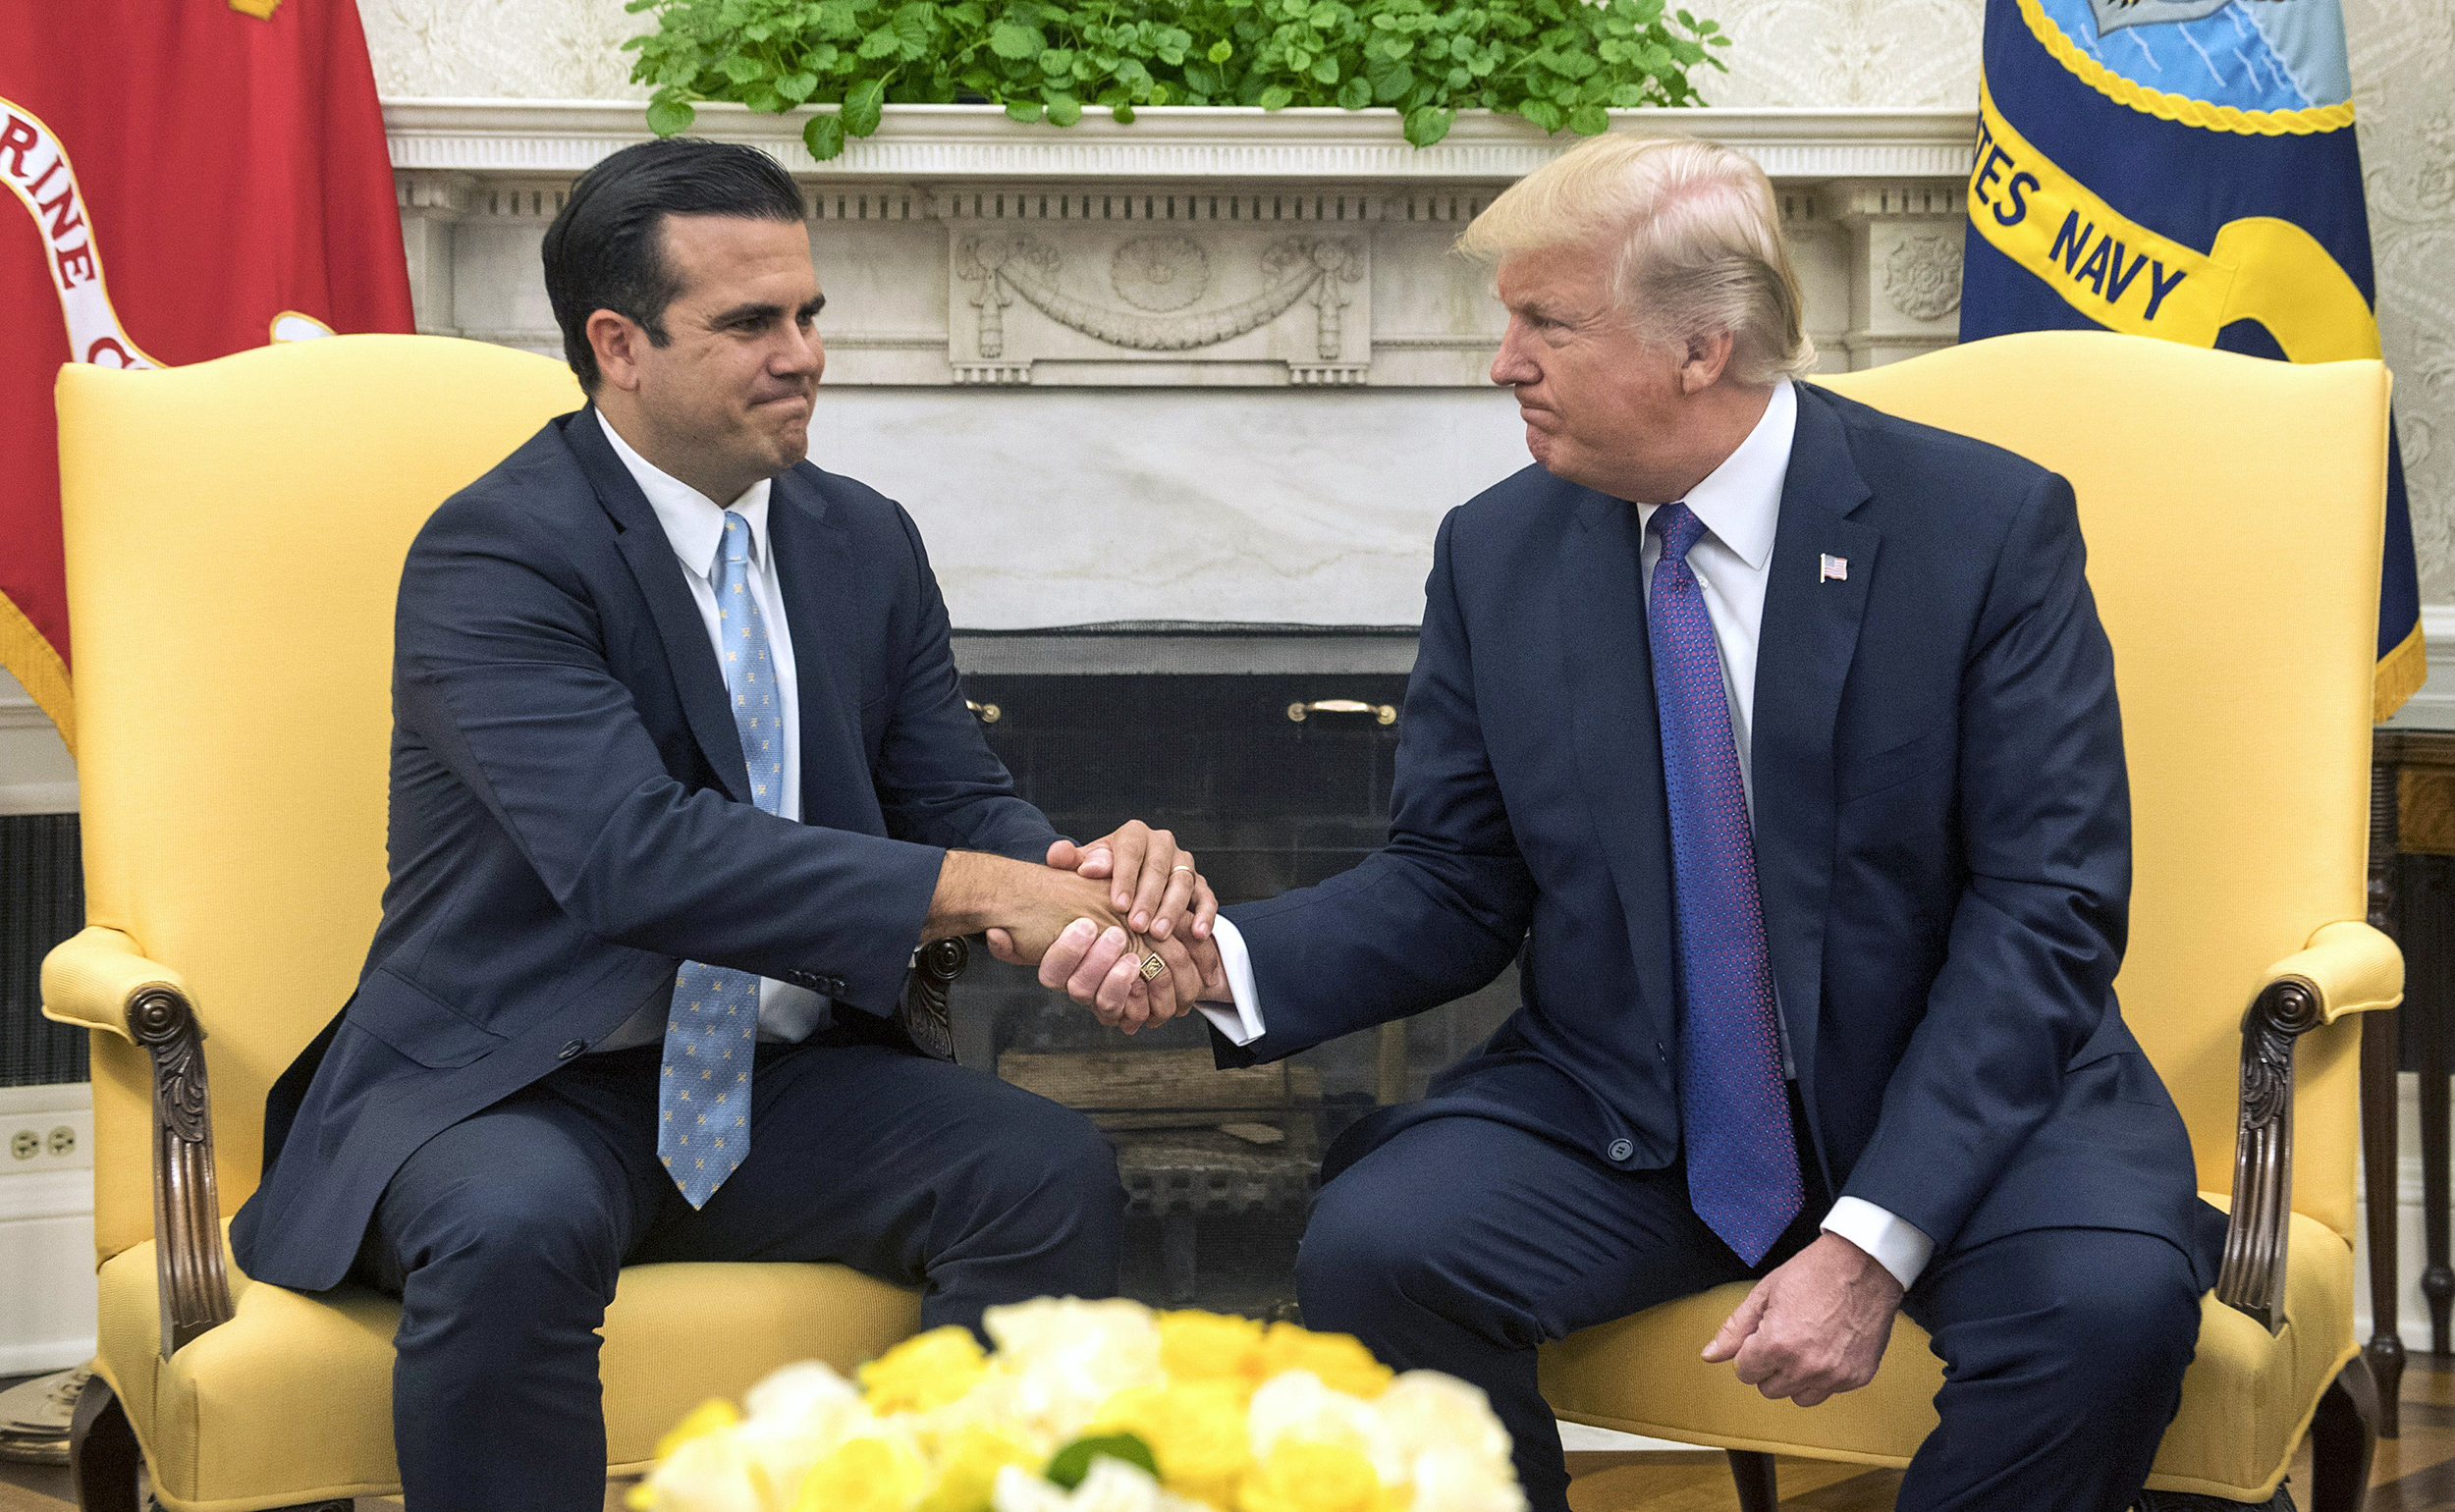 Trump Gives Administration a '10' for Puerto Rico Recovery